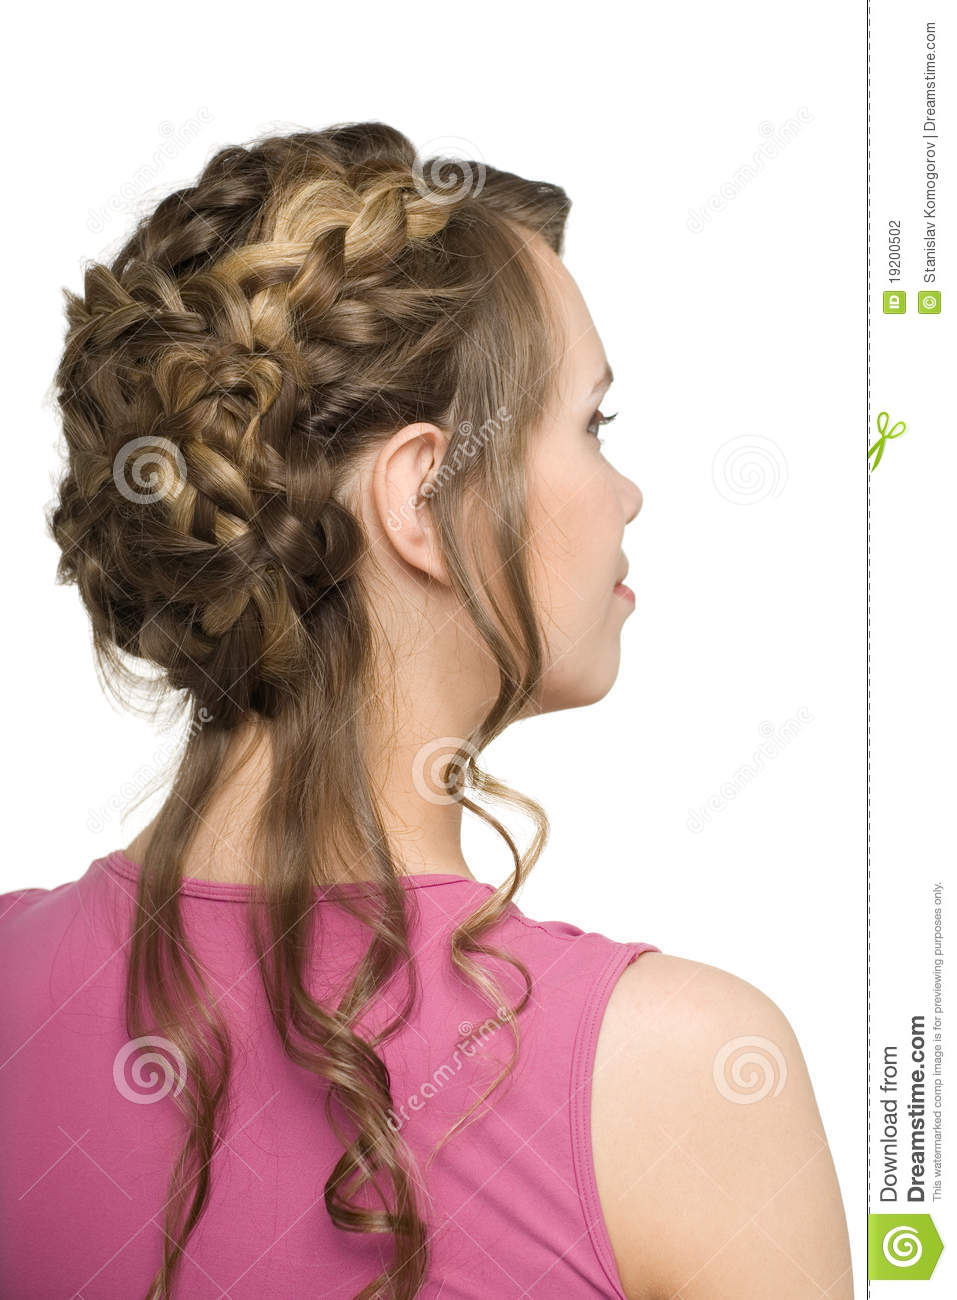 Beautiful Hair Cutting Style : Girl With Beautiful Hair Styling Stock Photography - Image: 19200502